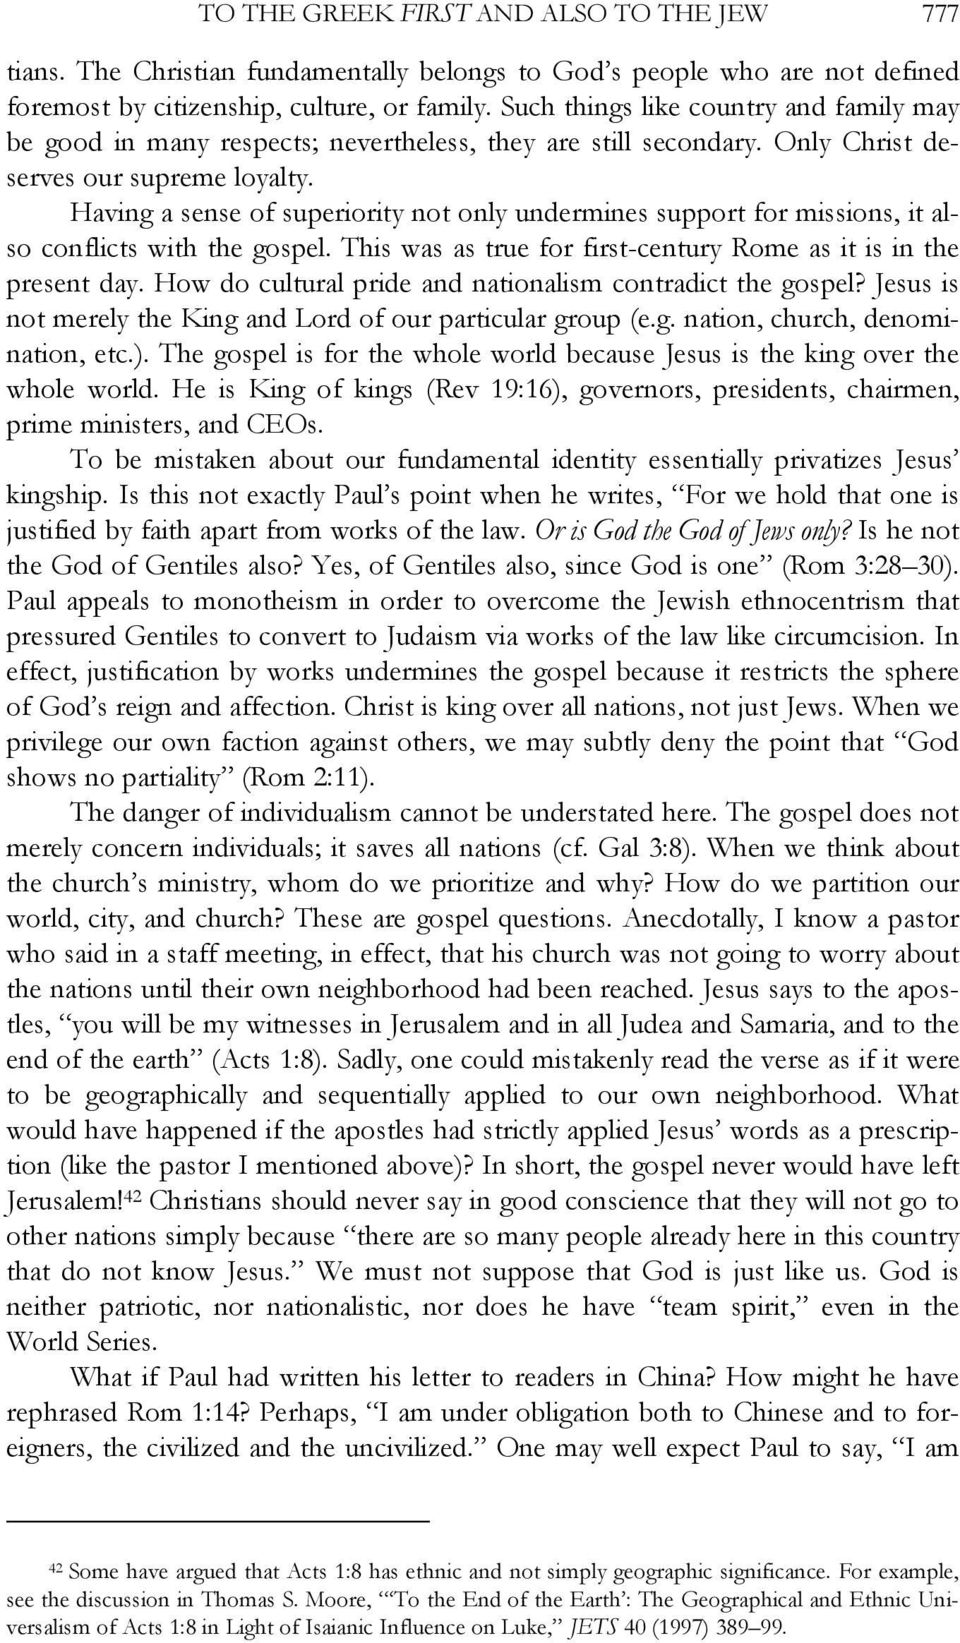 Having a sense of superiority not only undermines support for missions, it also conflicts with the gospel. This was as true for first-century Rome as it is in the present day.